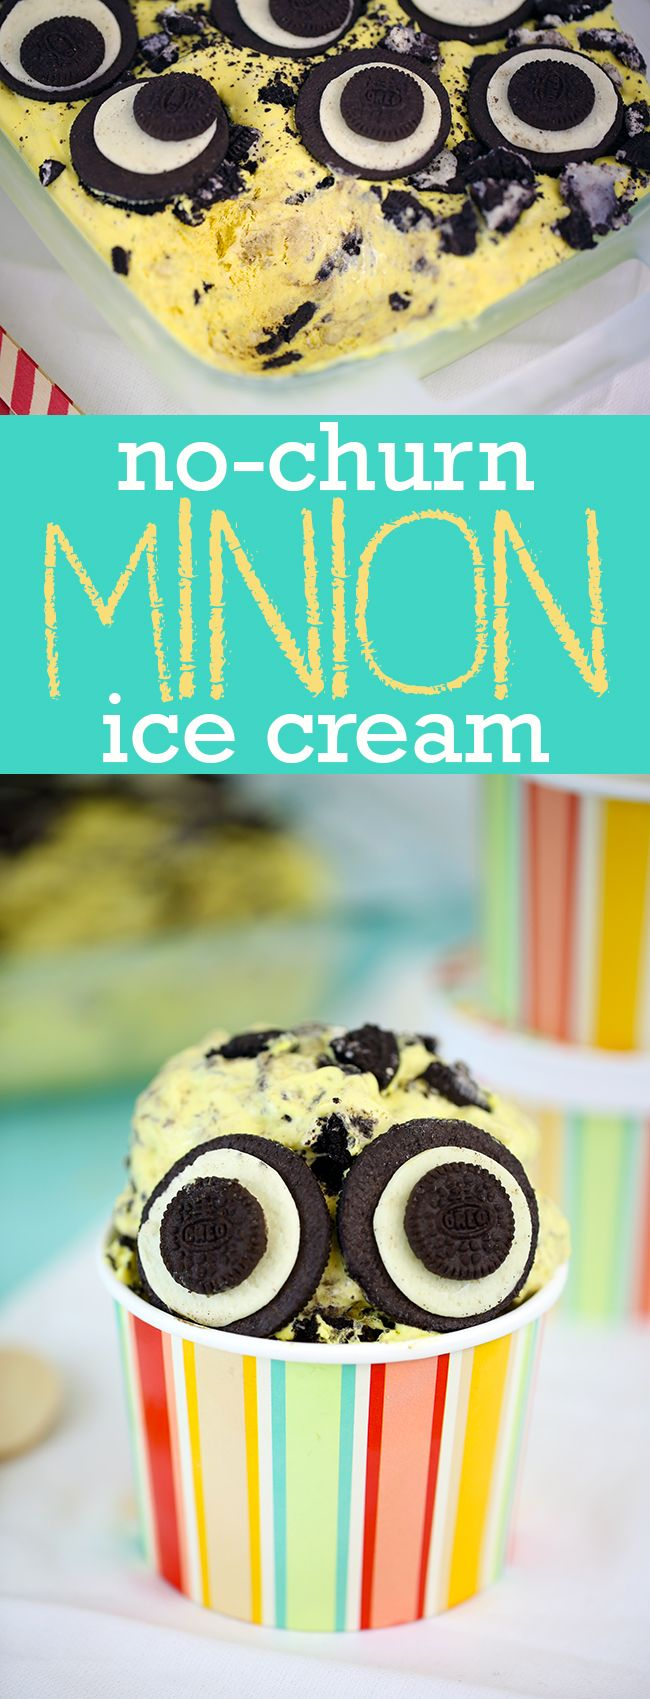 CUTE ALERT! No Churn Minion Ice Cream recipe. Delicious kid friendly ice cream loaded with bananas of course... and Oreo cookies. #pinterestremakes